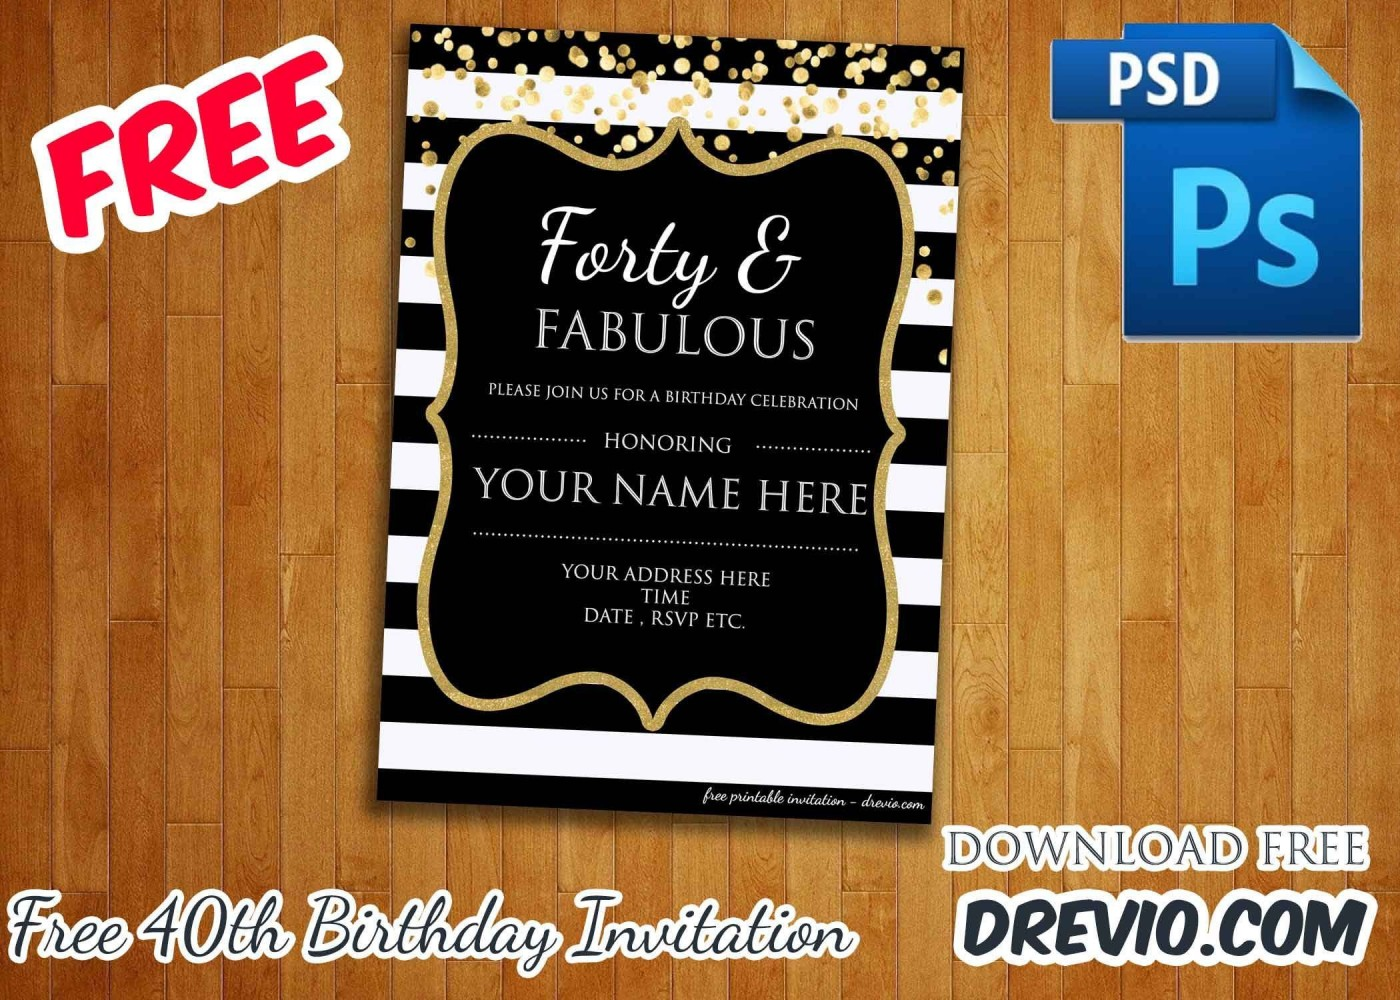 006 Awesome 40th Birthday Party Invite Template Free Inspiration 1400